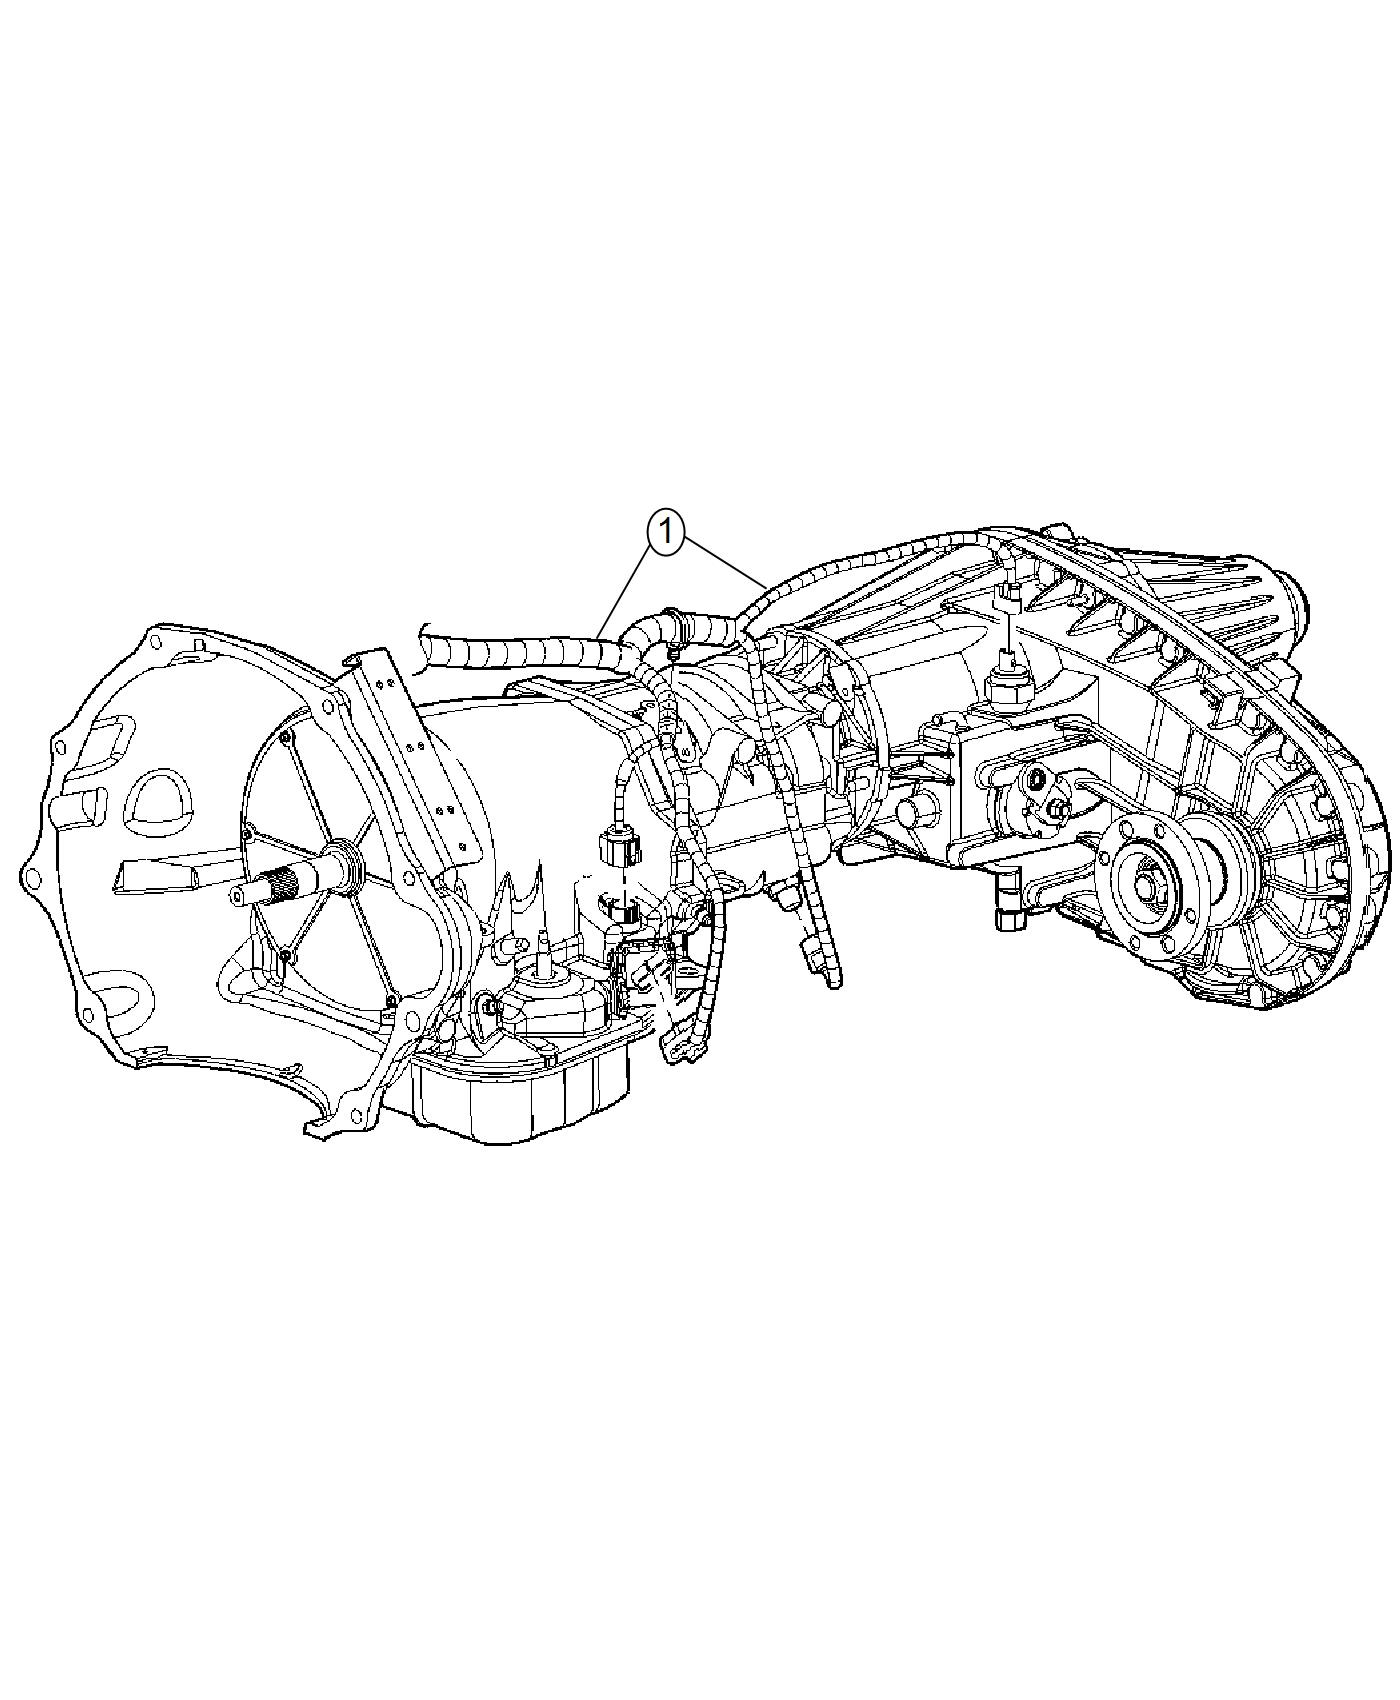 2016 Ram 3500 Wiring. Transmission. [elec shift-on-the-fly